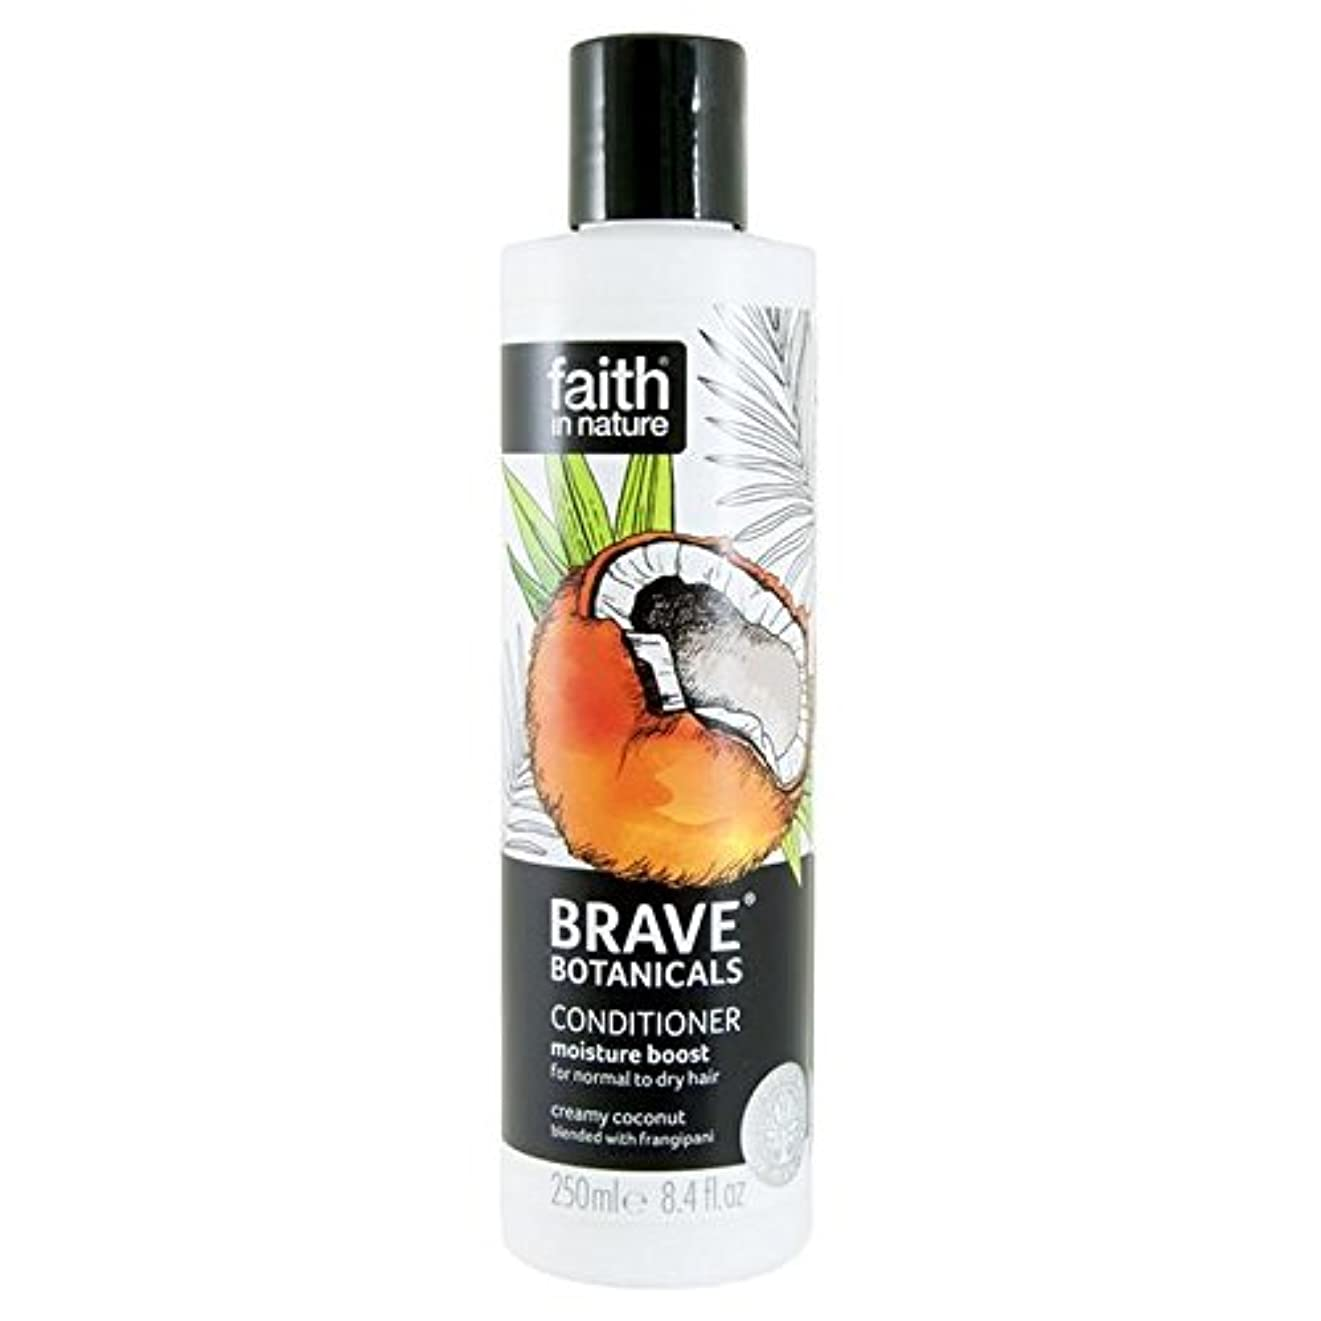 代表団誤ってうめきBrave Botanicals Coconut & Frangipani Moisture Boost Conditioner 250ml (Pack of 6) - (Faith In Nature) 勇敢な植物ココナッツ...